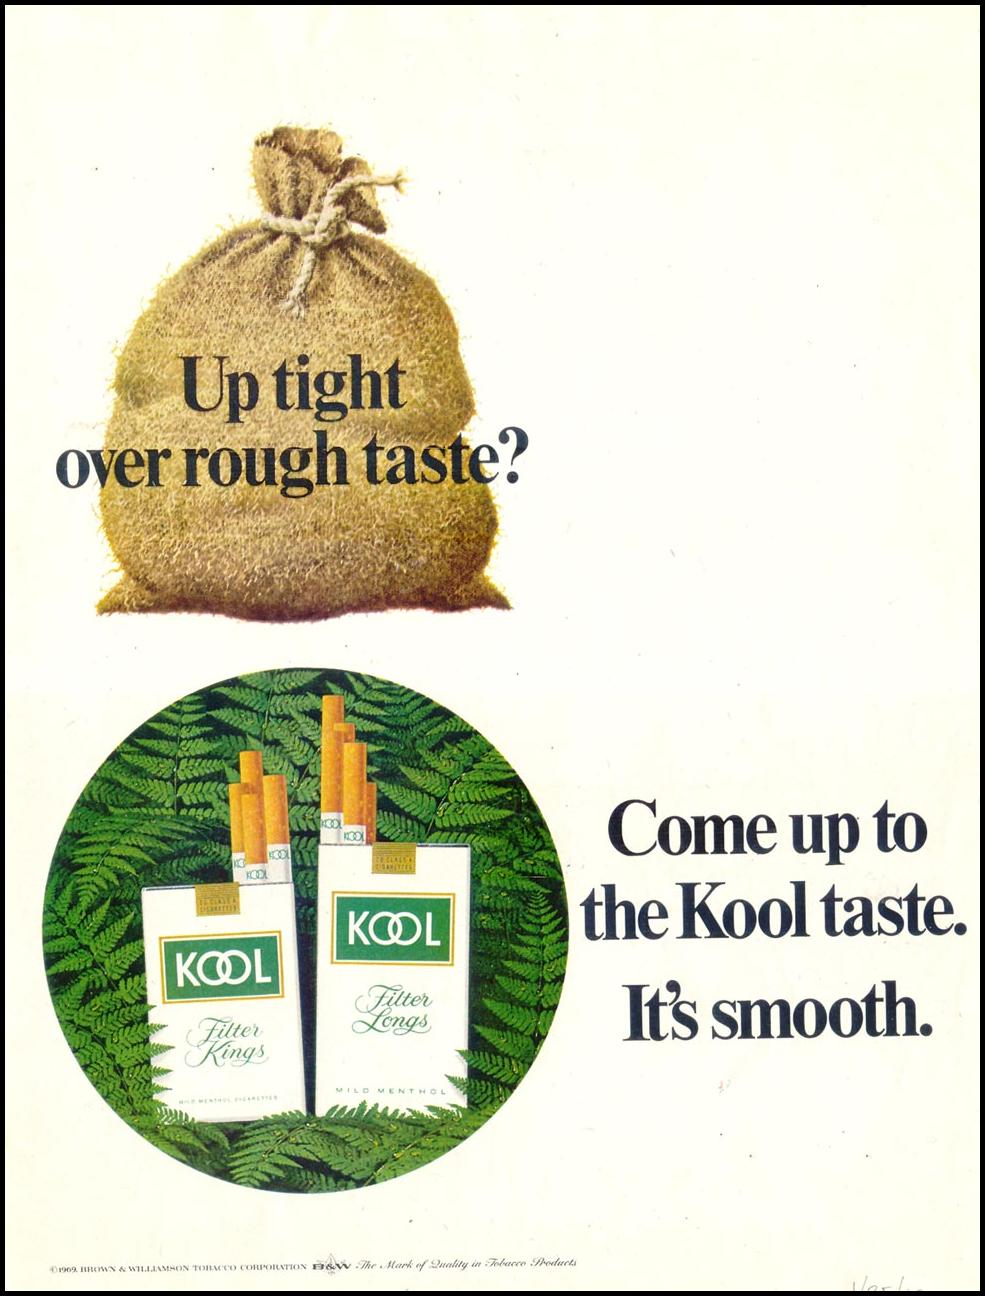 KOOL CIGARETTES SATURDAY EVENING POST 01/25/1969 p. 65